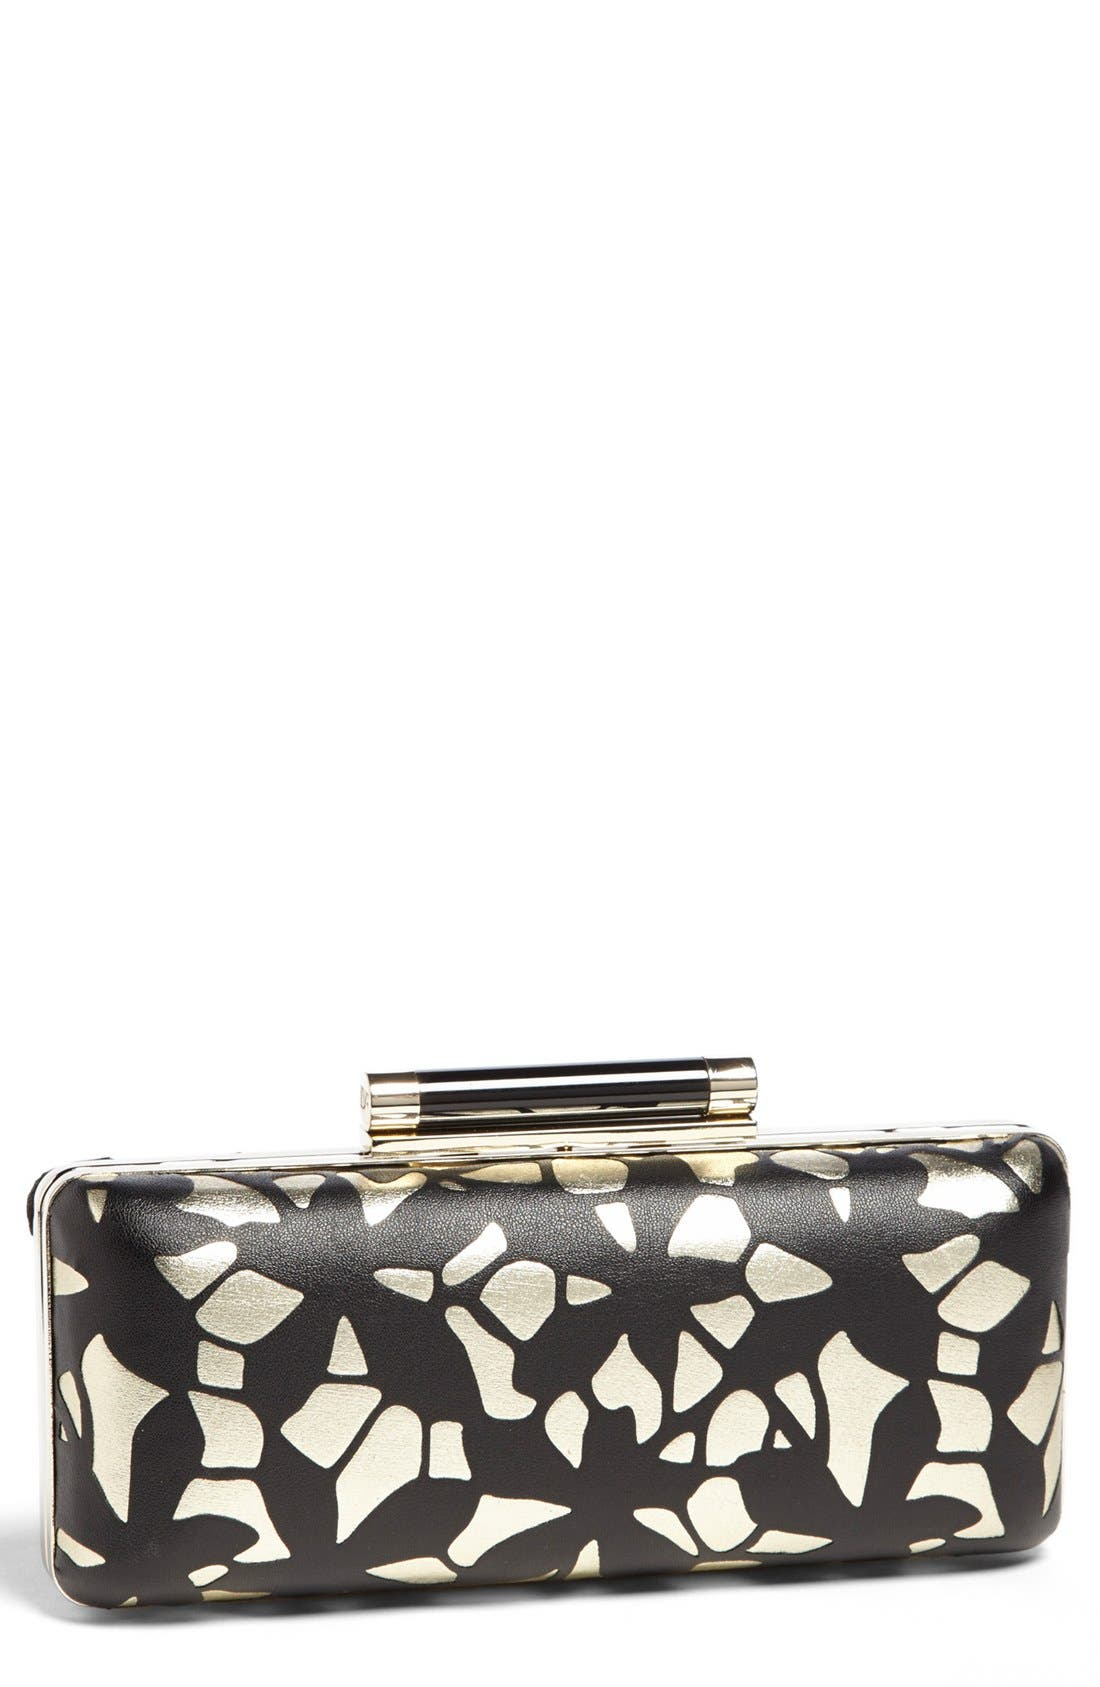 Alternate Image 1 Selected - Diane von Furstenberg 'Tonda' Clutch